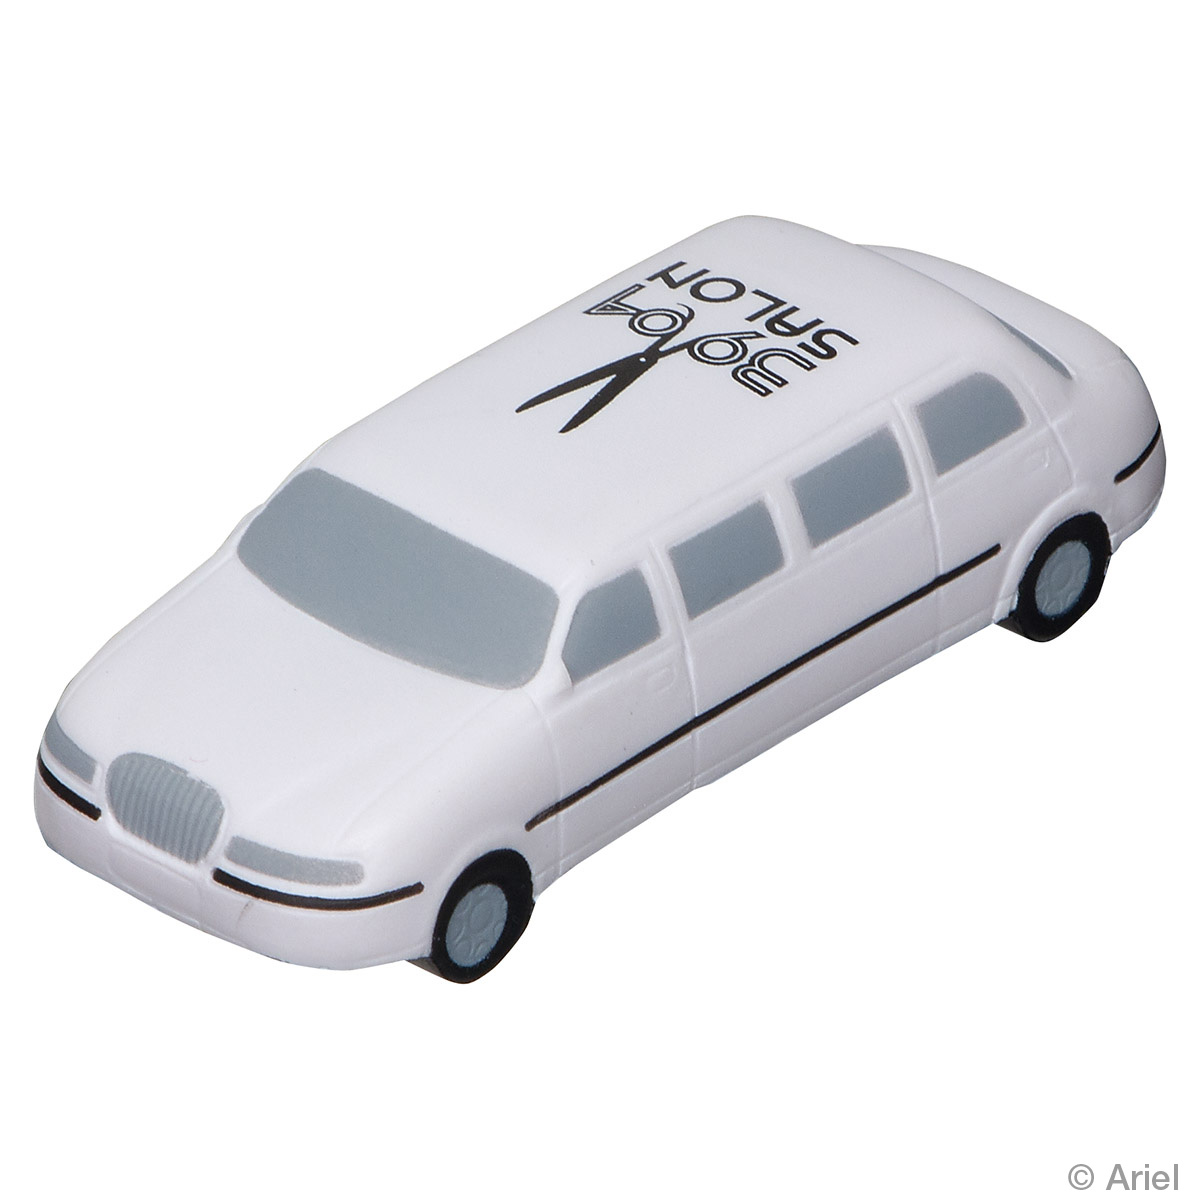 Limousine Stress Reliever, LTR-LM51 - 1 Colour Imprint